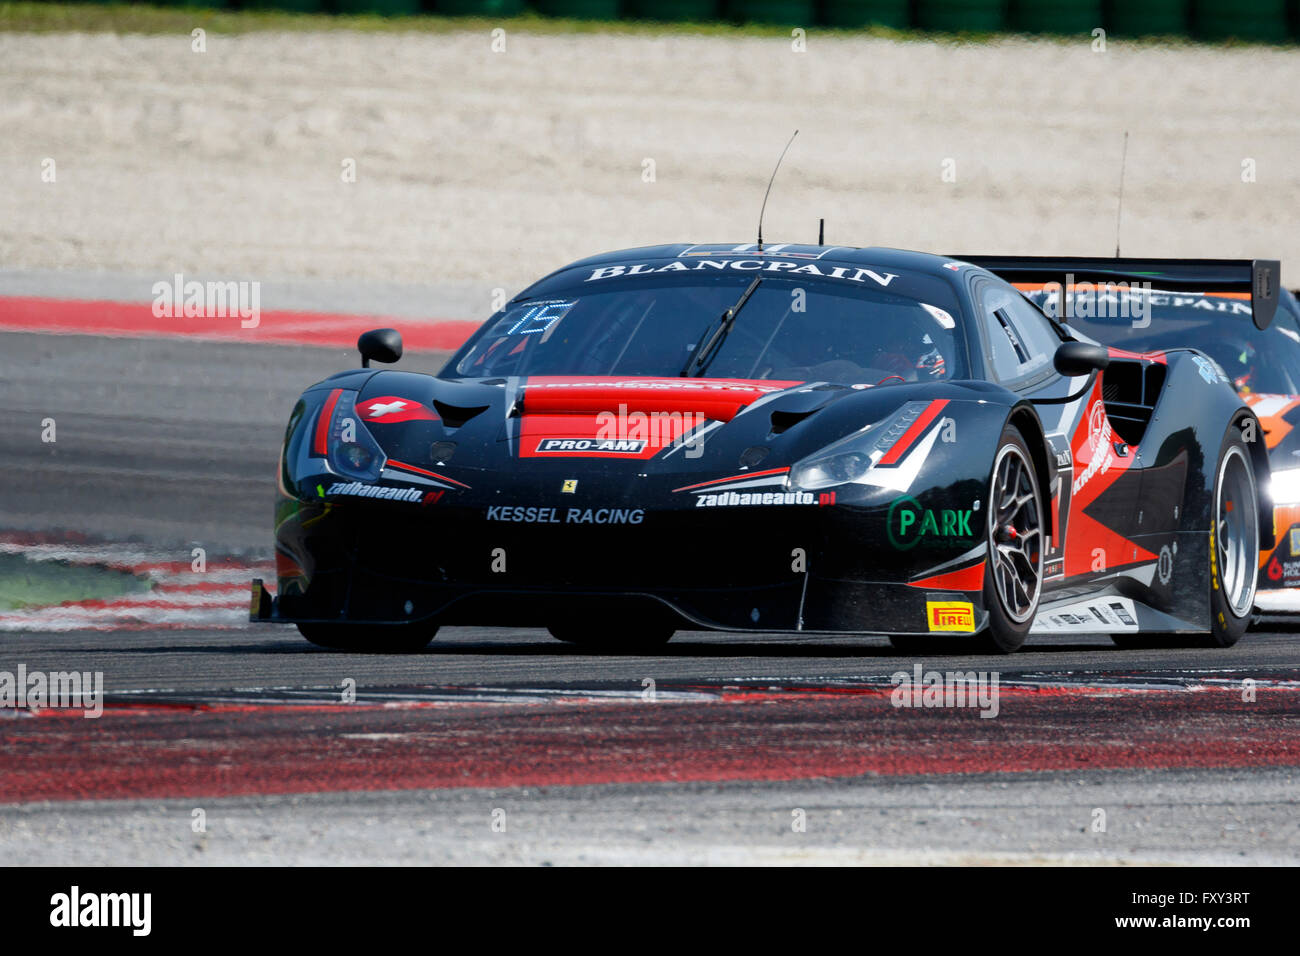 misano adriatico italy april 10 2016 ferrari 488 gt3 of kessel stock photo royalty free. Black Bedroom Furniture Sets. Home Design Ideas